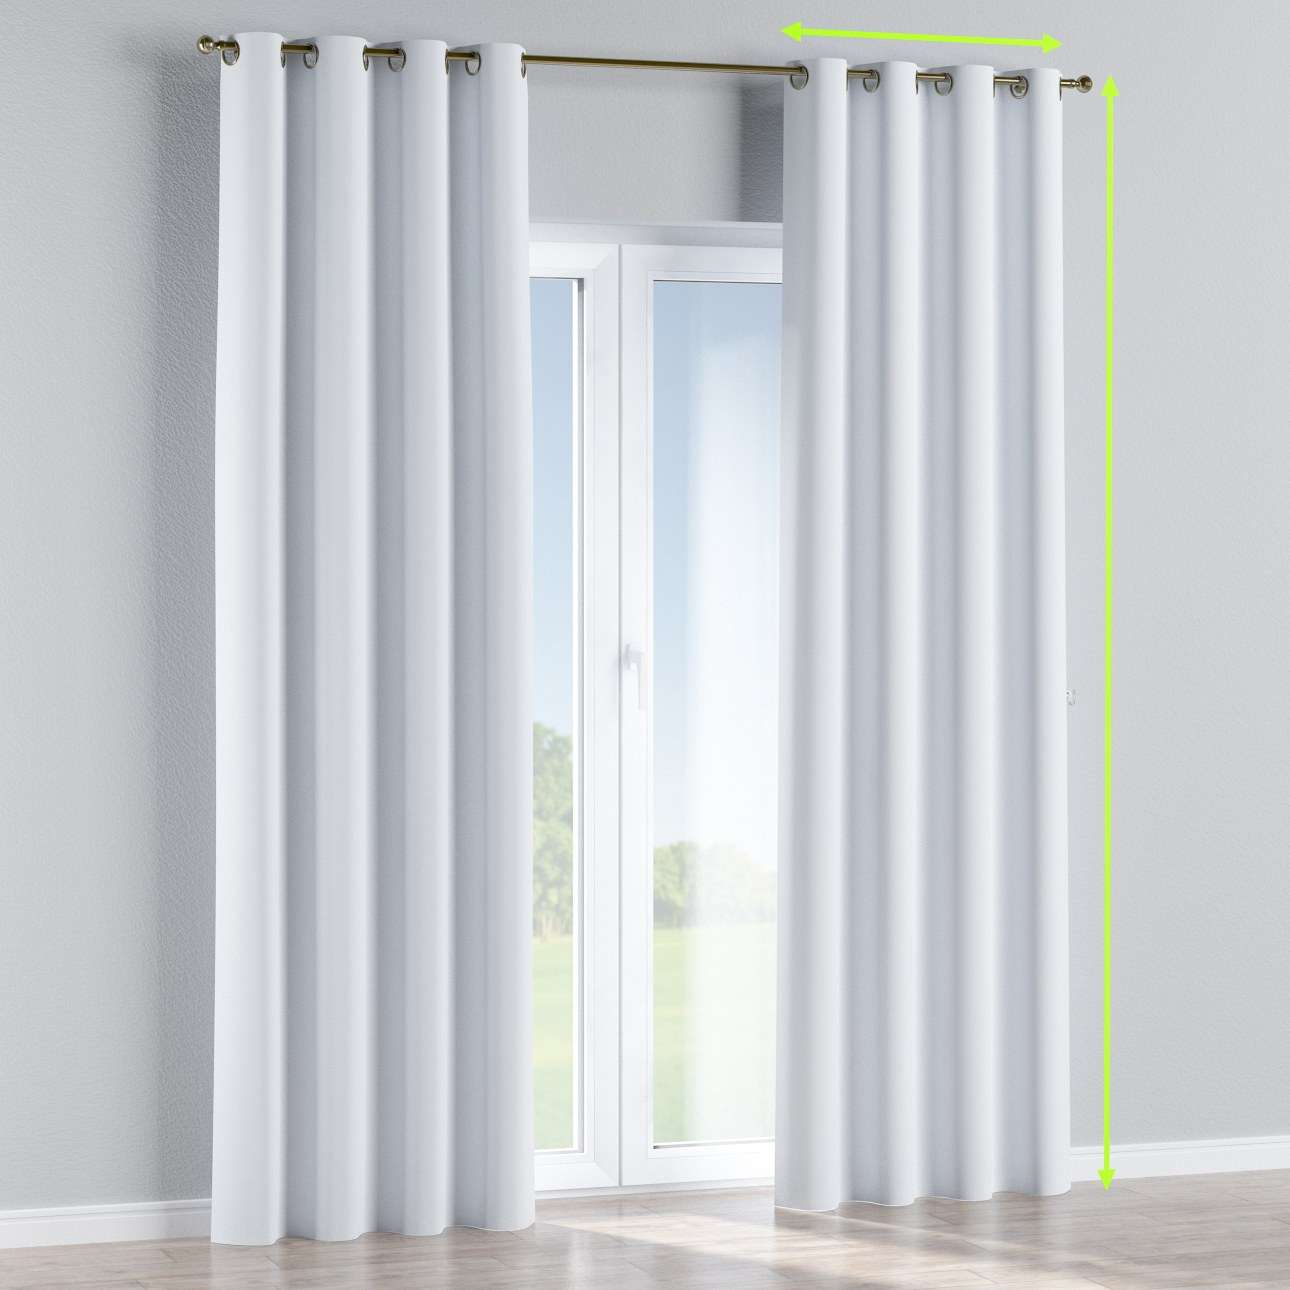 Eyelet curtain in collection Blackout, fabric: 269-01